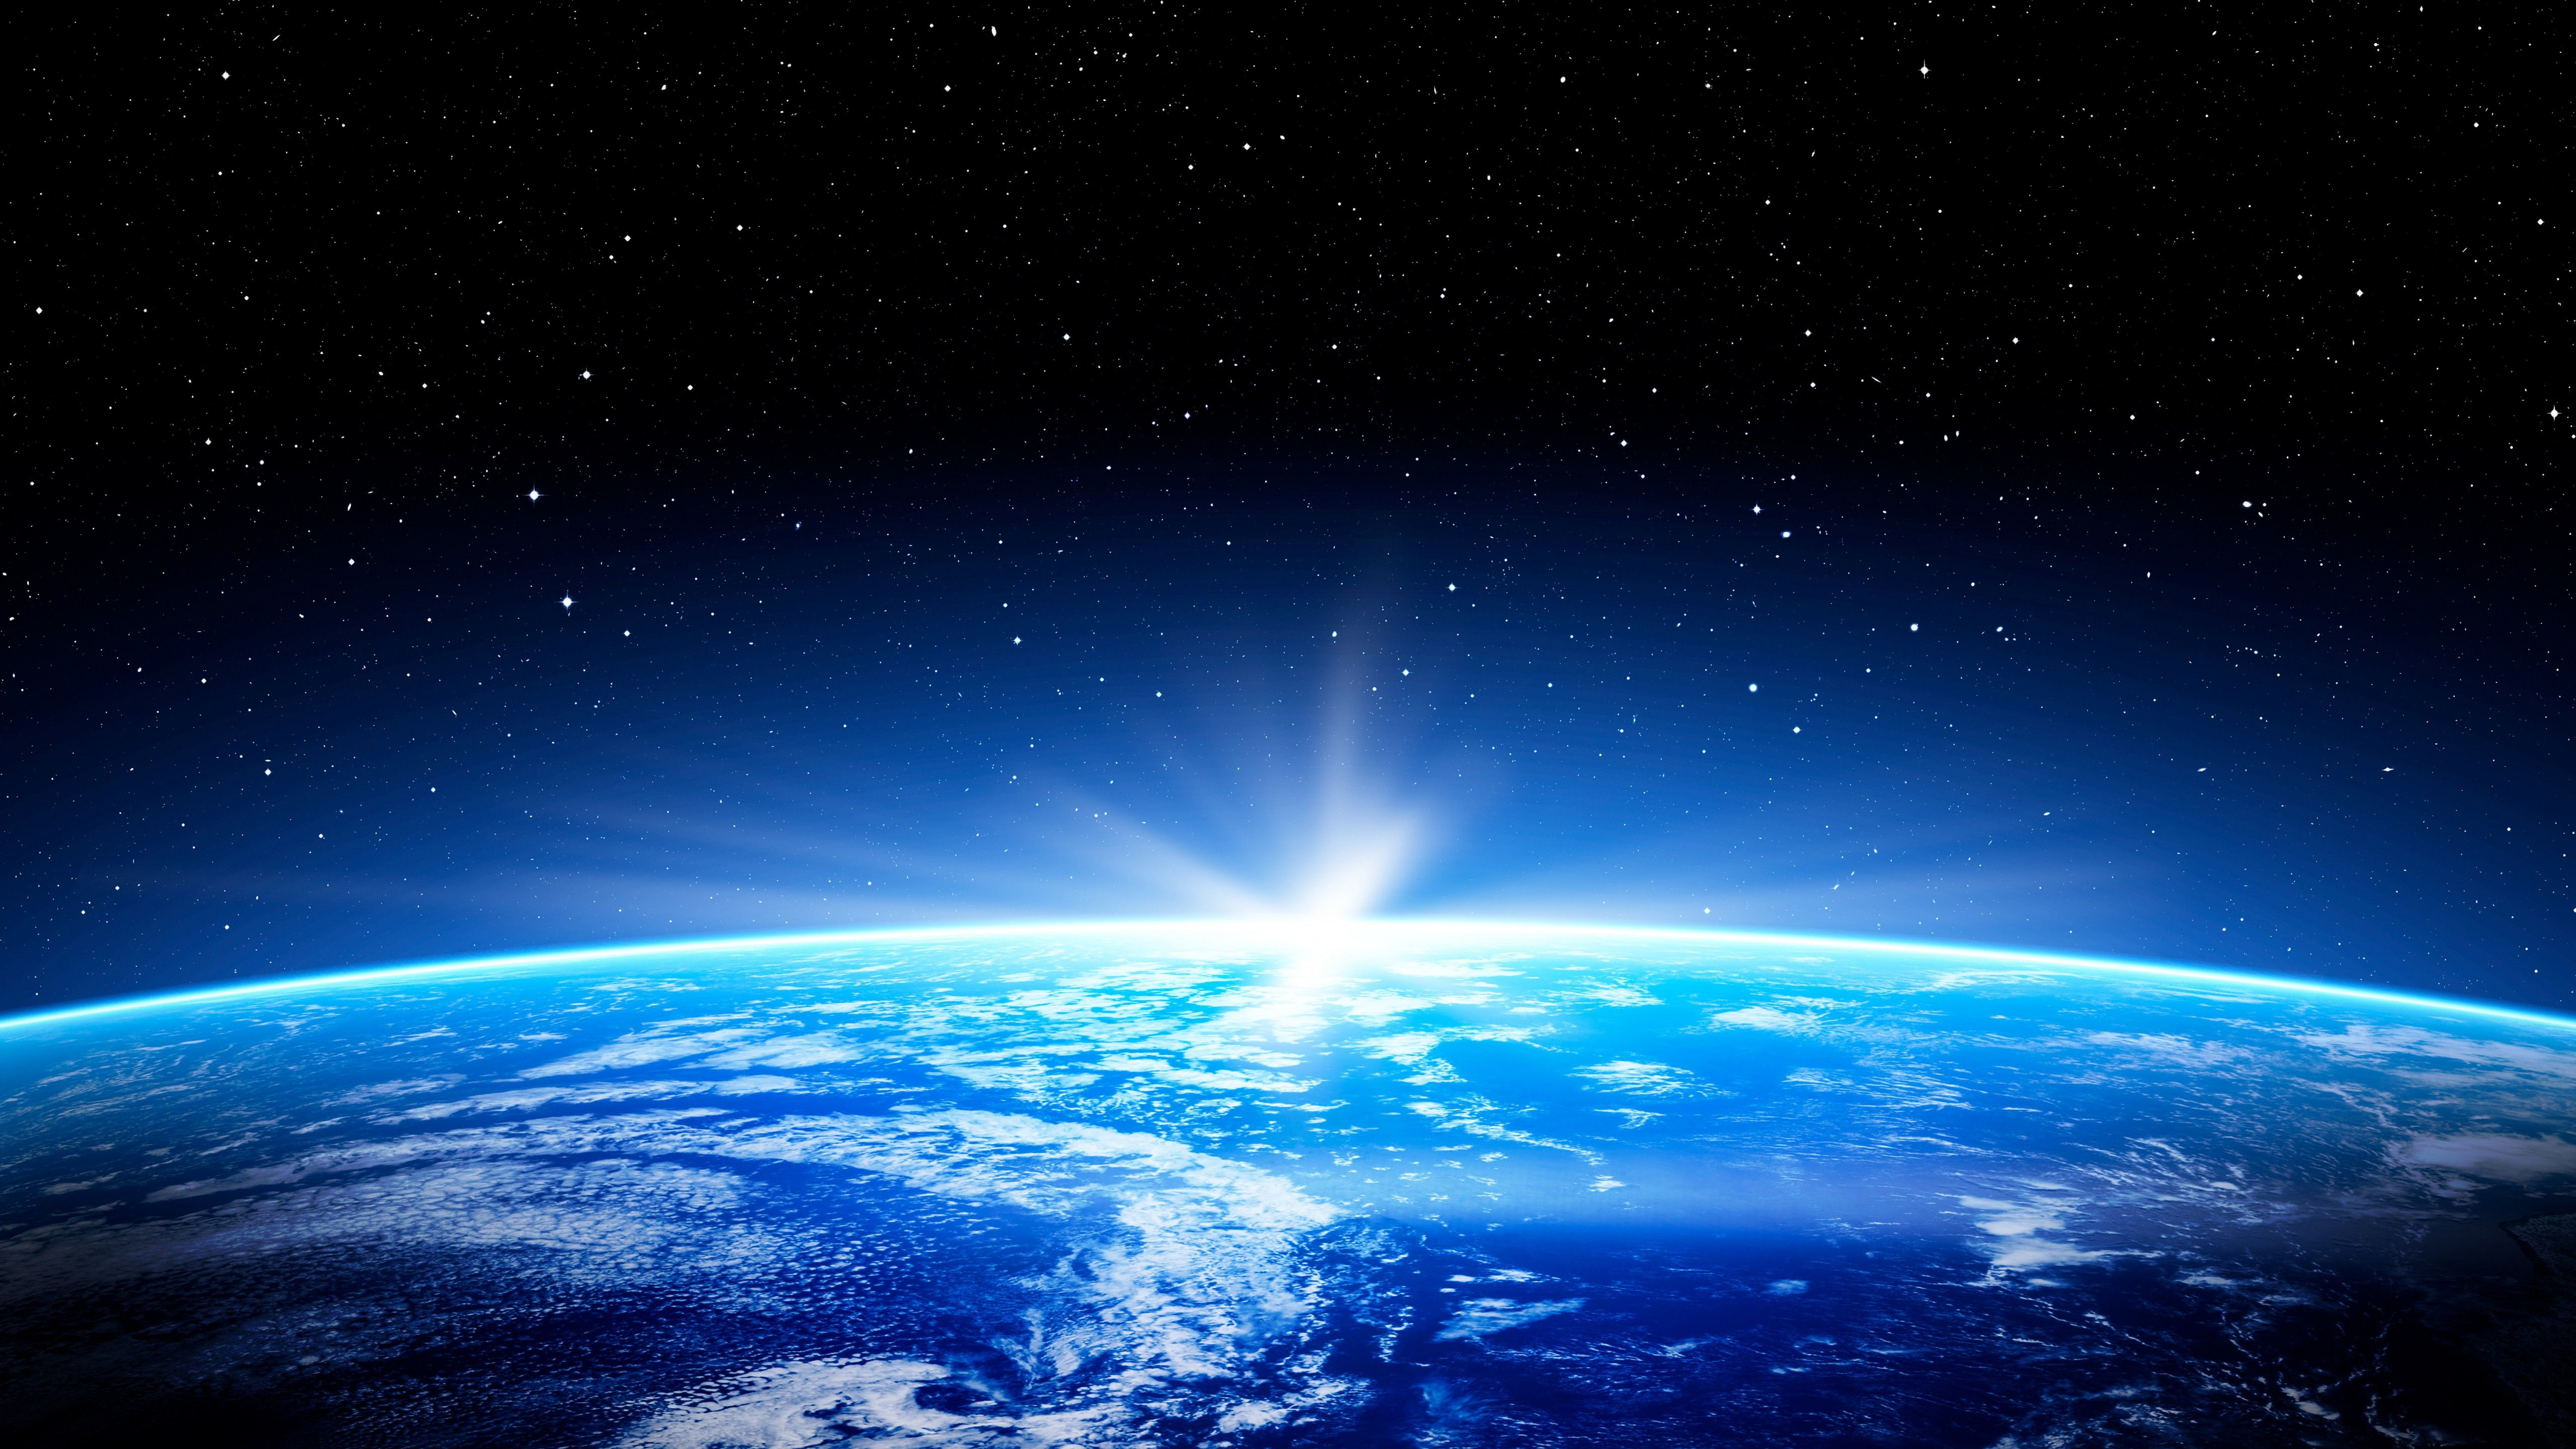 5120x2880 Wallpaper Earth, space, planet, star, 5k, Space #17861